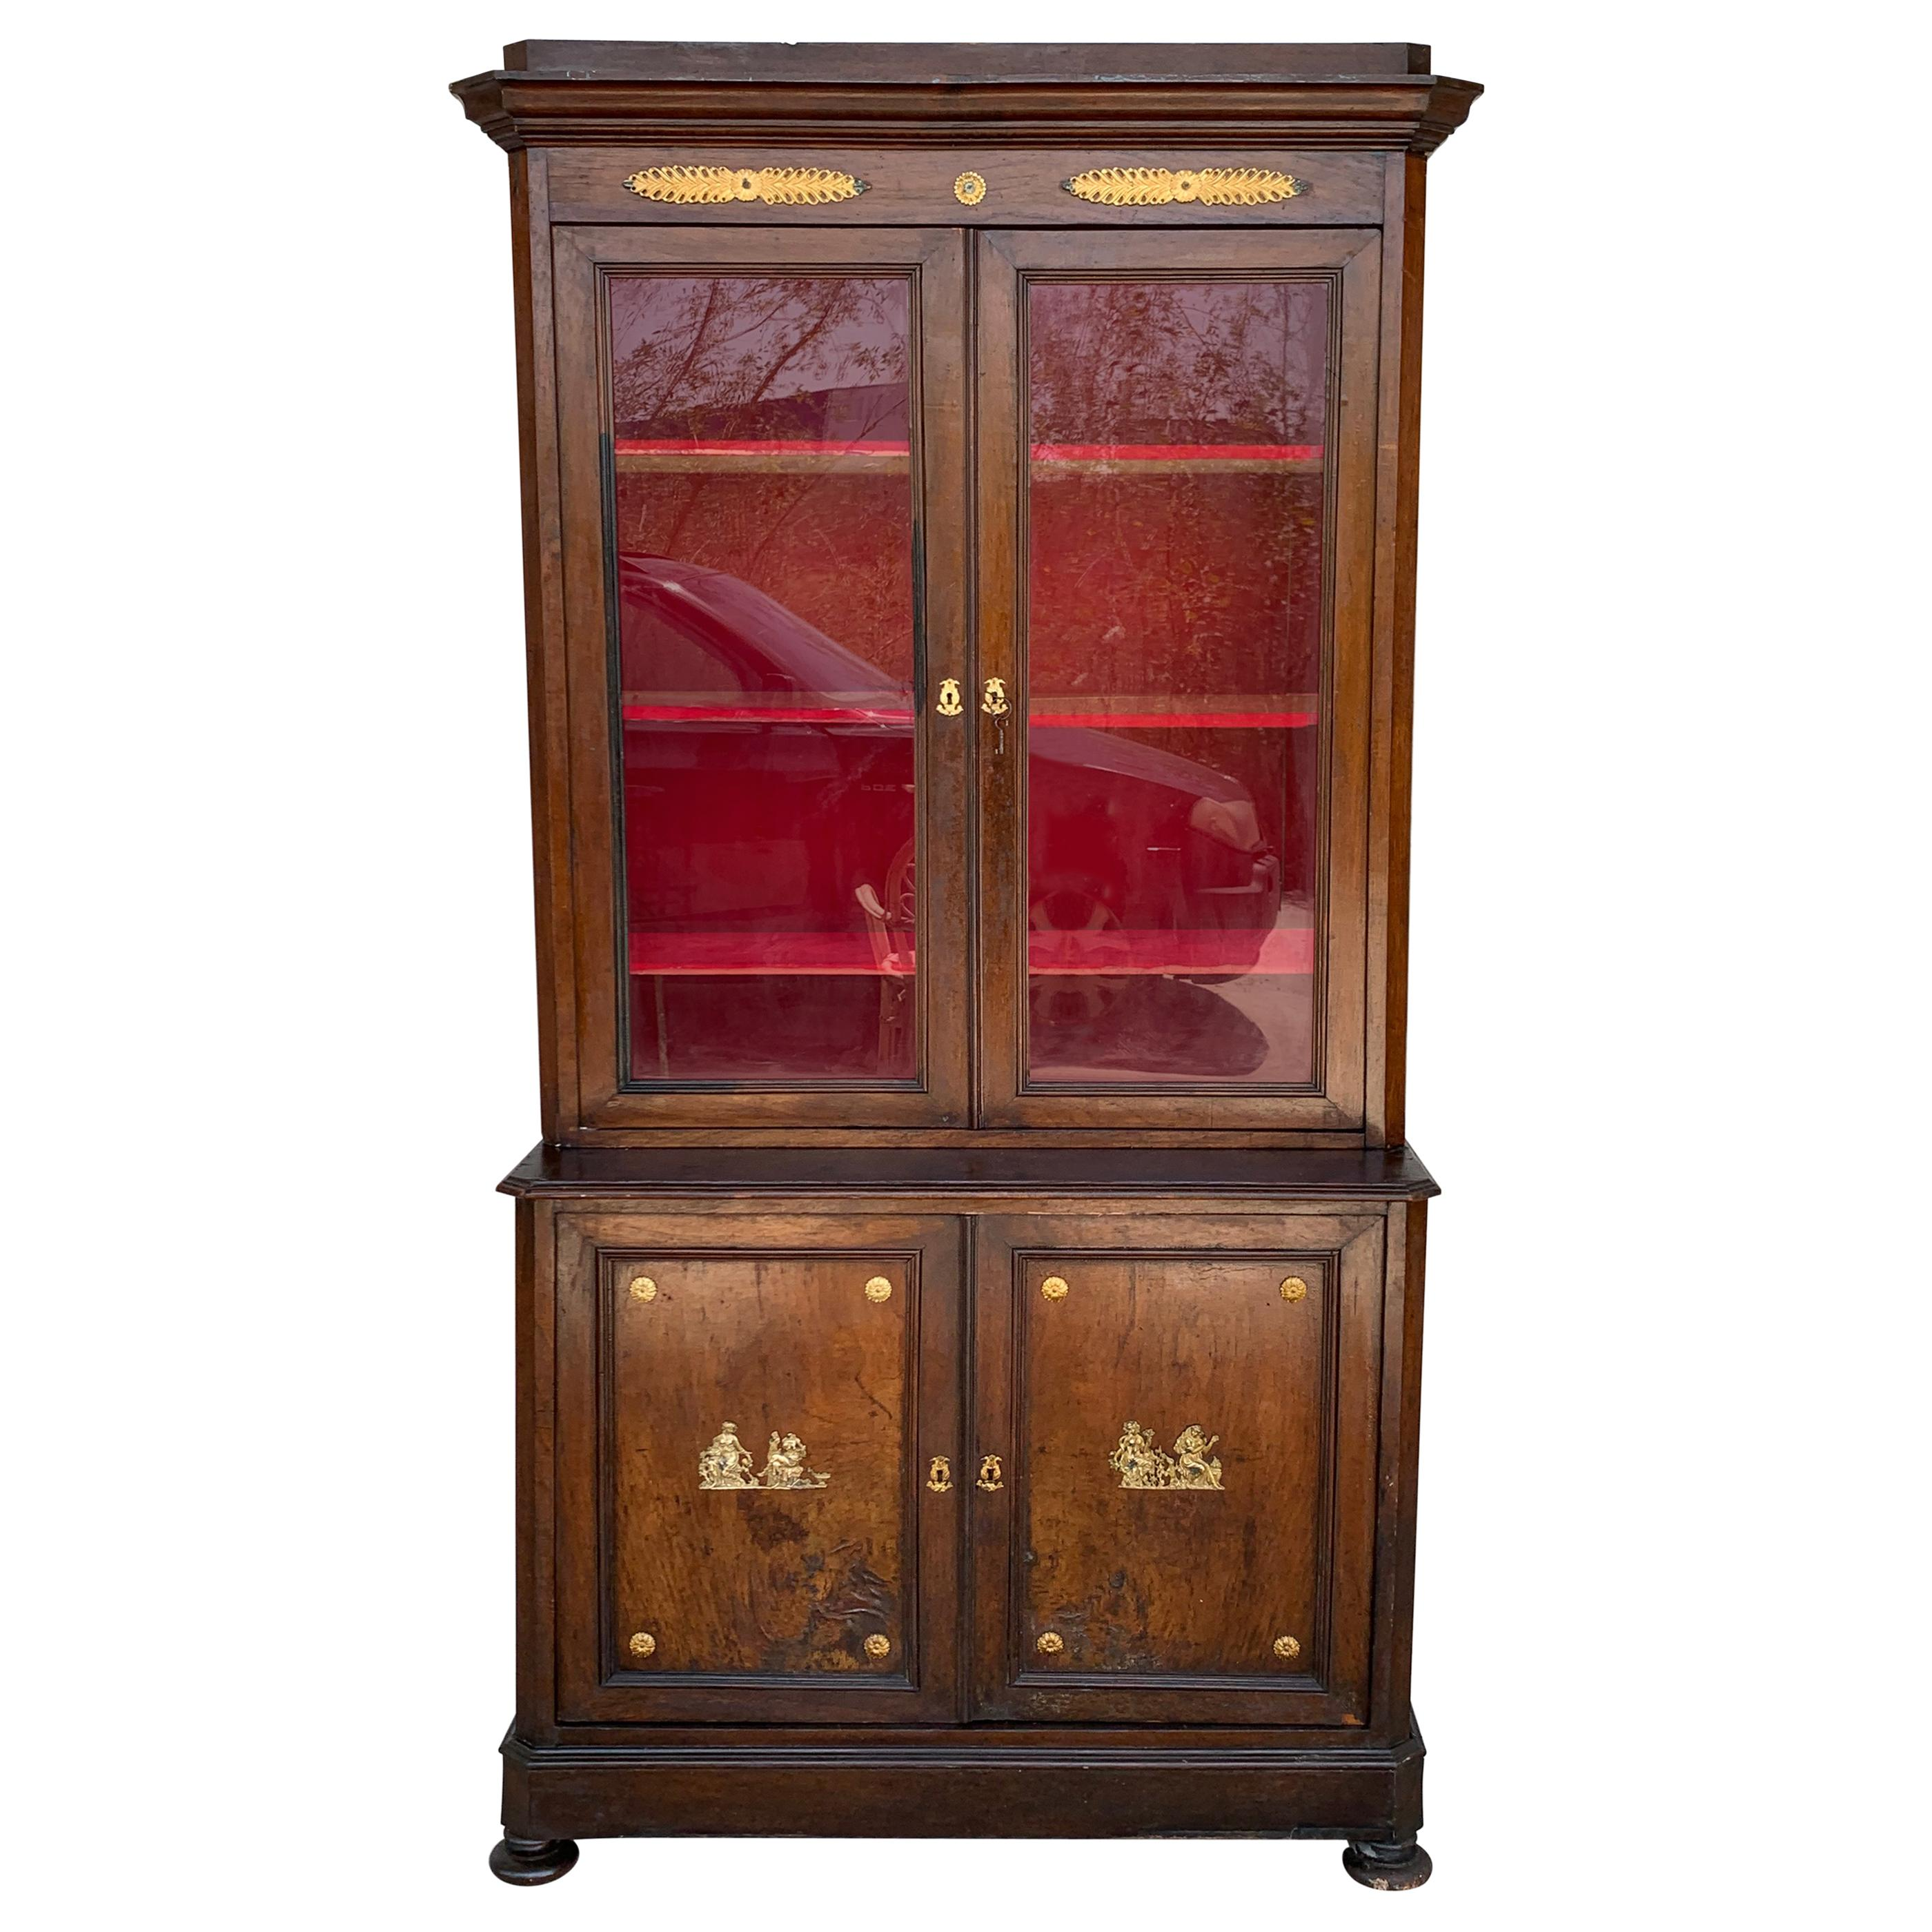 Large Empire Danish Glass Cabinet, Bookcase in Mahogany with Bronze Details